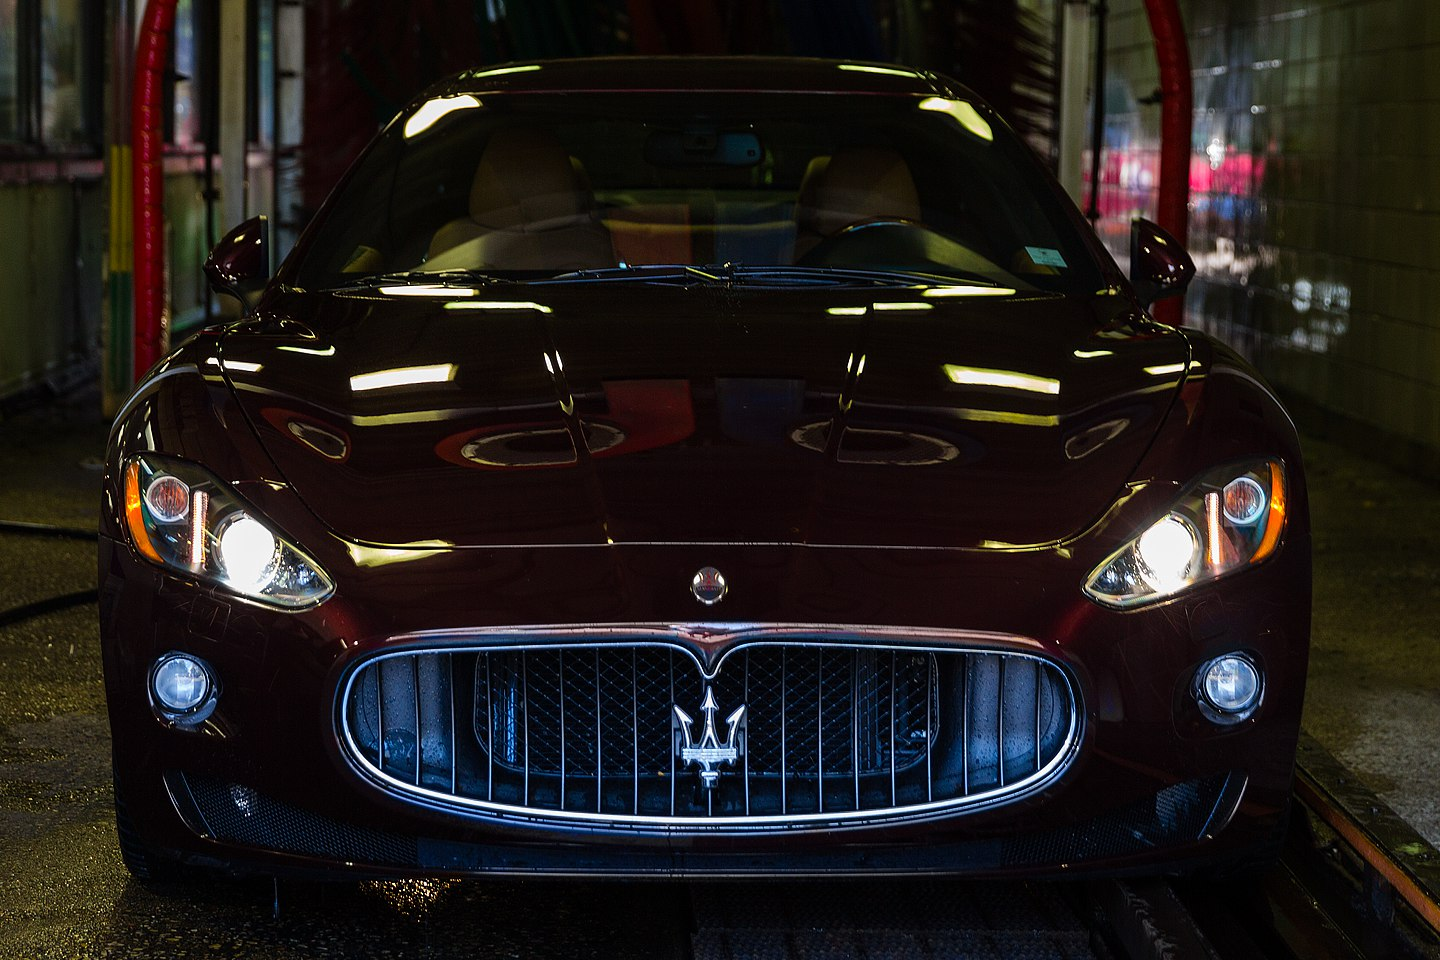 crossroads car wash photography of clean luxury sports car by jacob rosenfeld photography